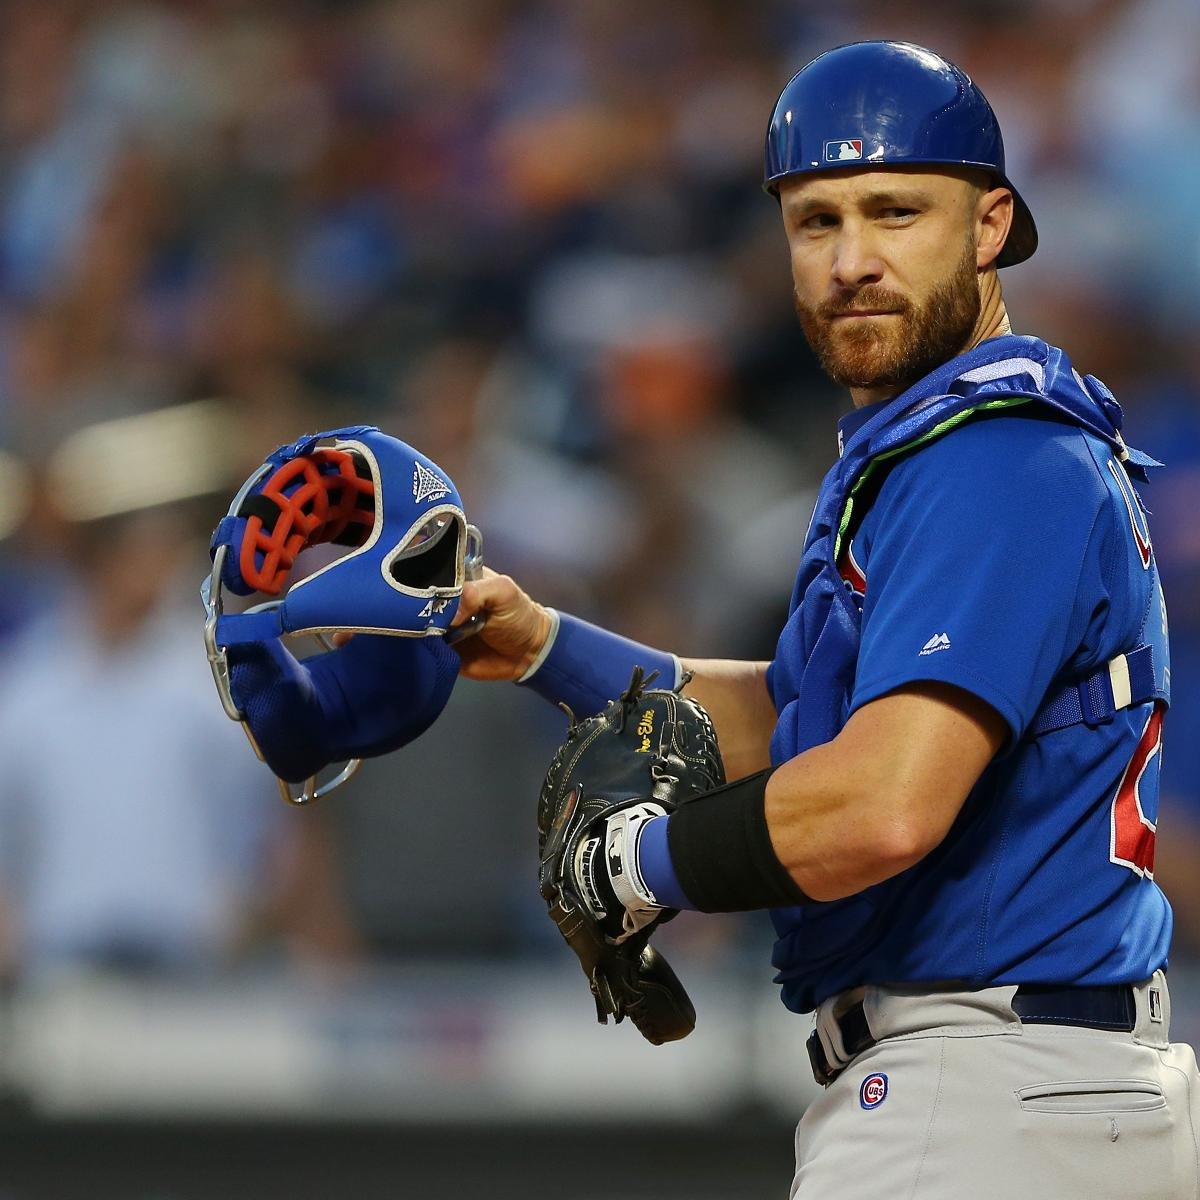 Red Sox Rumors: 2-Time All-Star Jonathan Lucroy Agrees to Minor League Contract